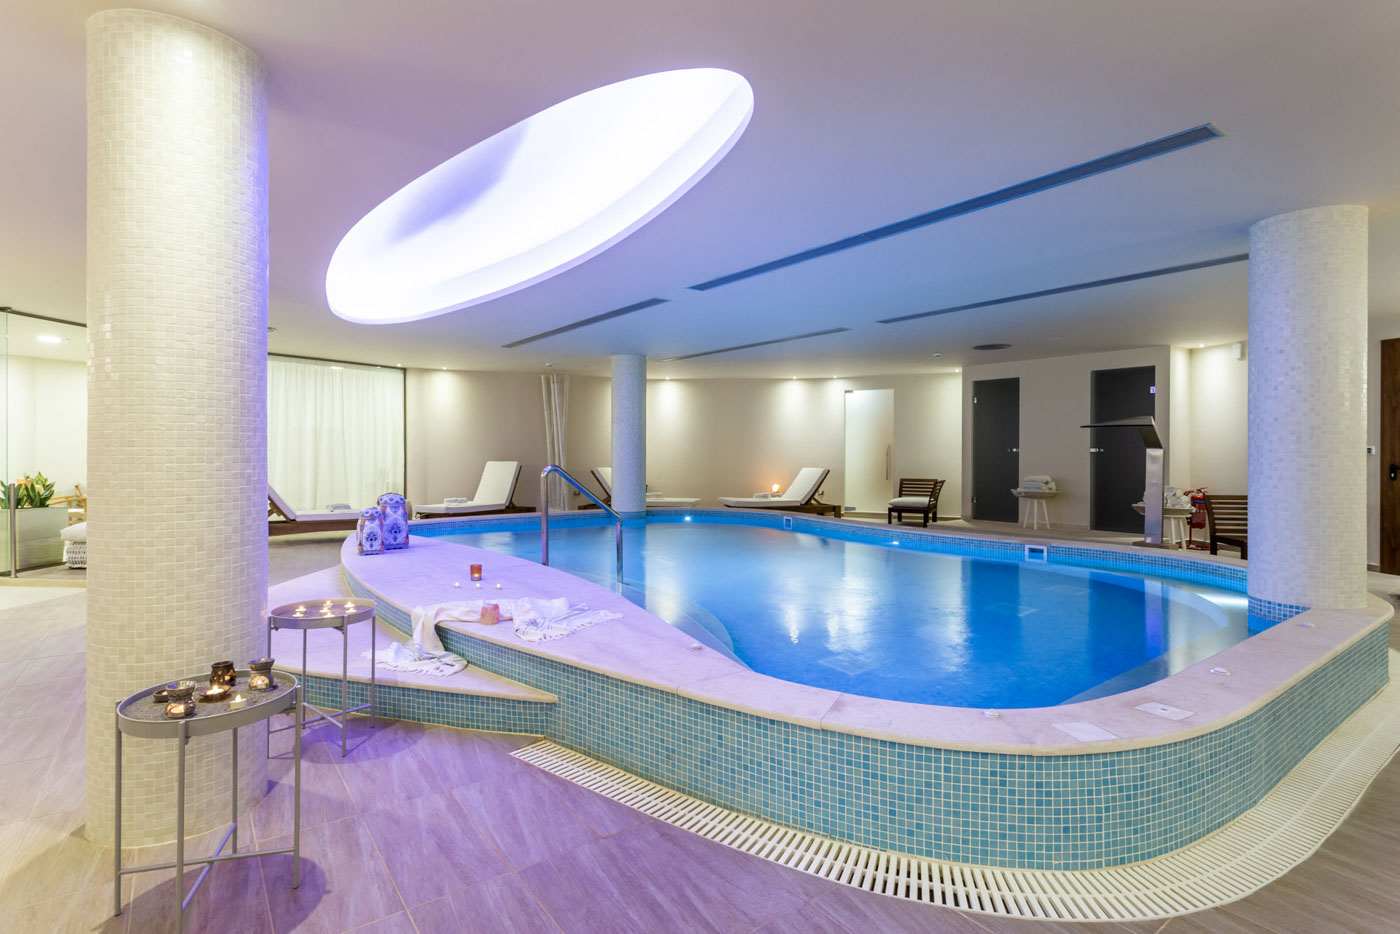 Elysian luxury hotel and spa Kalamata inside pool